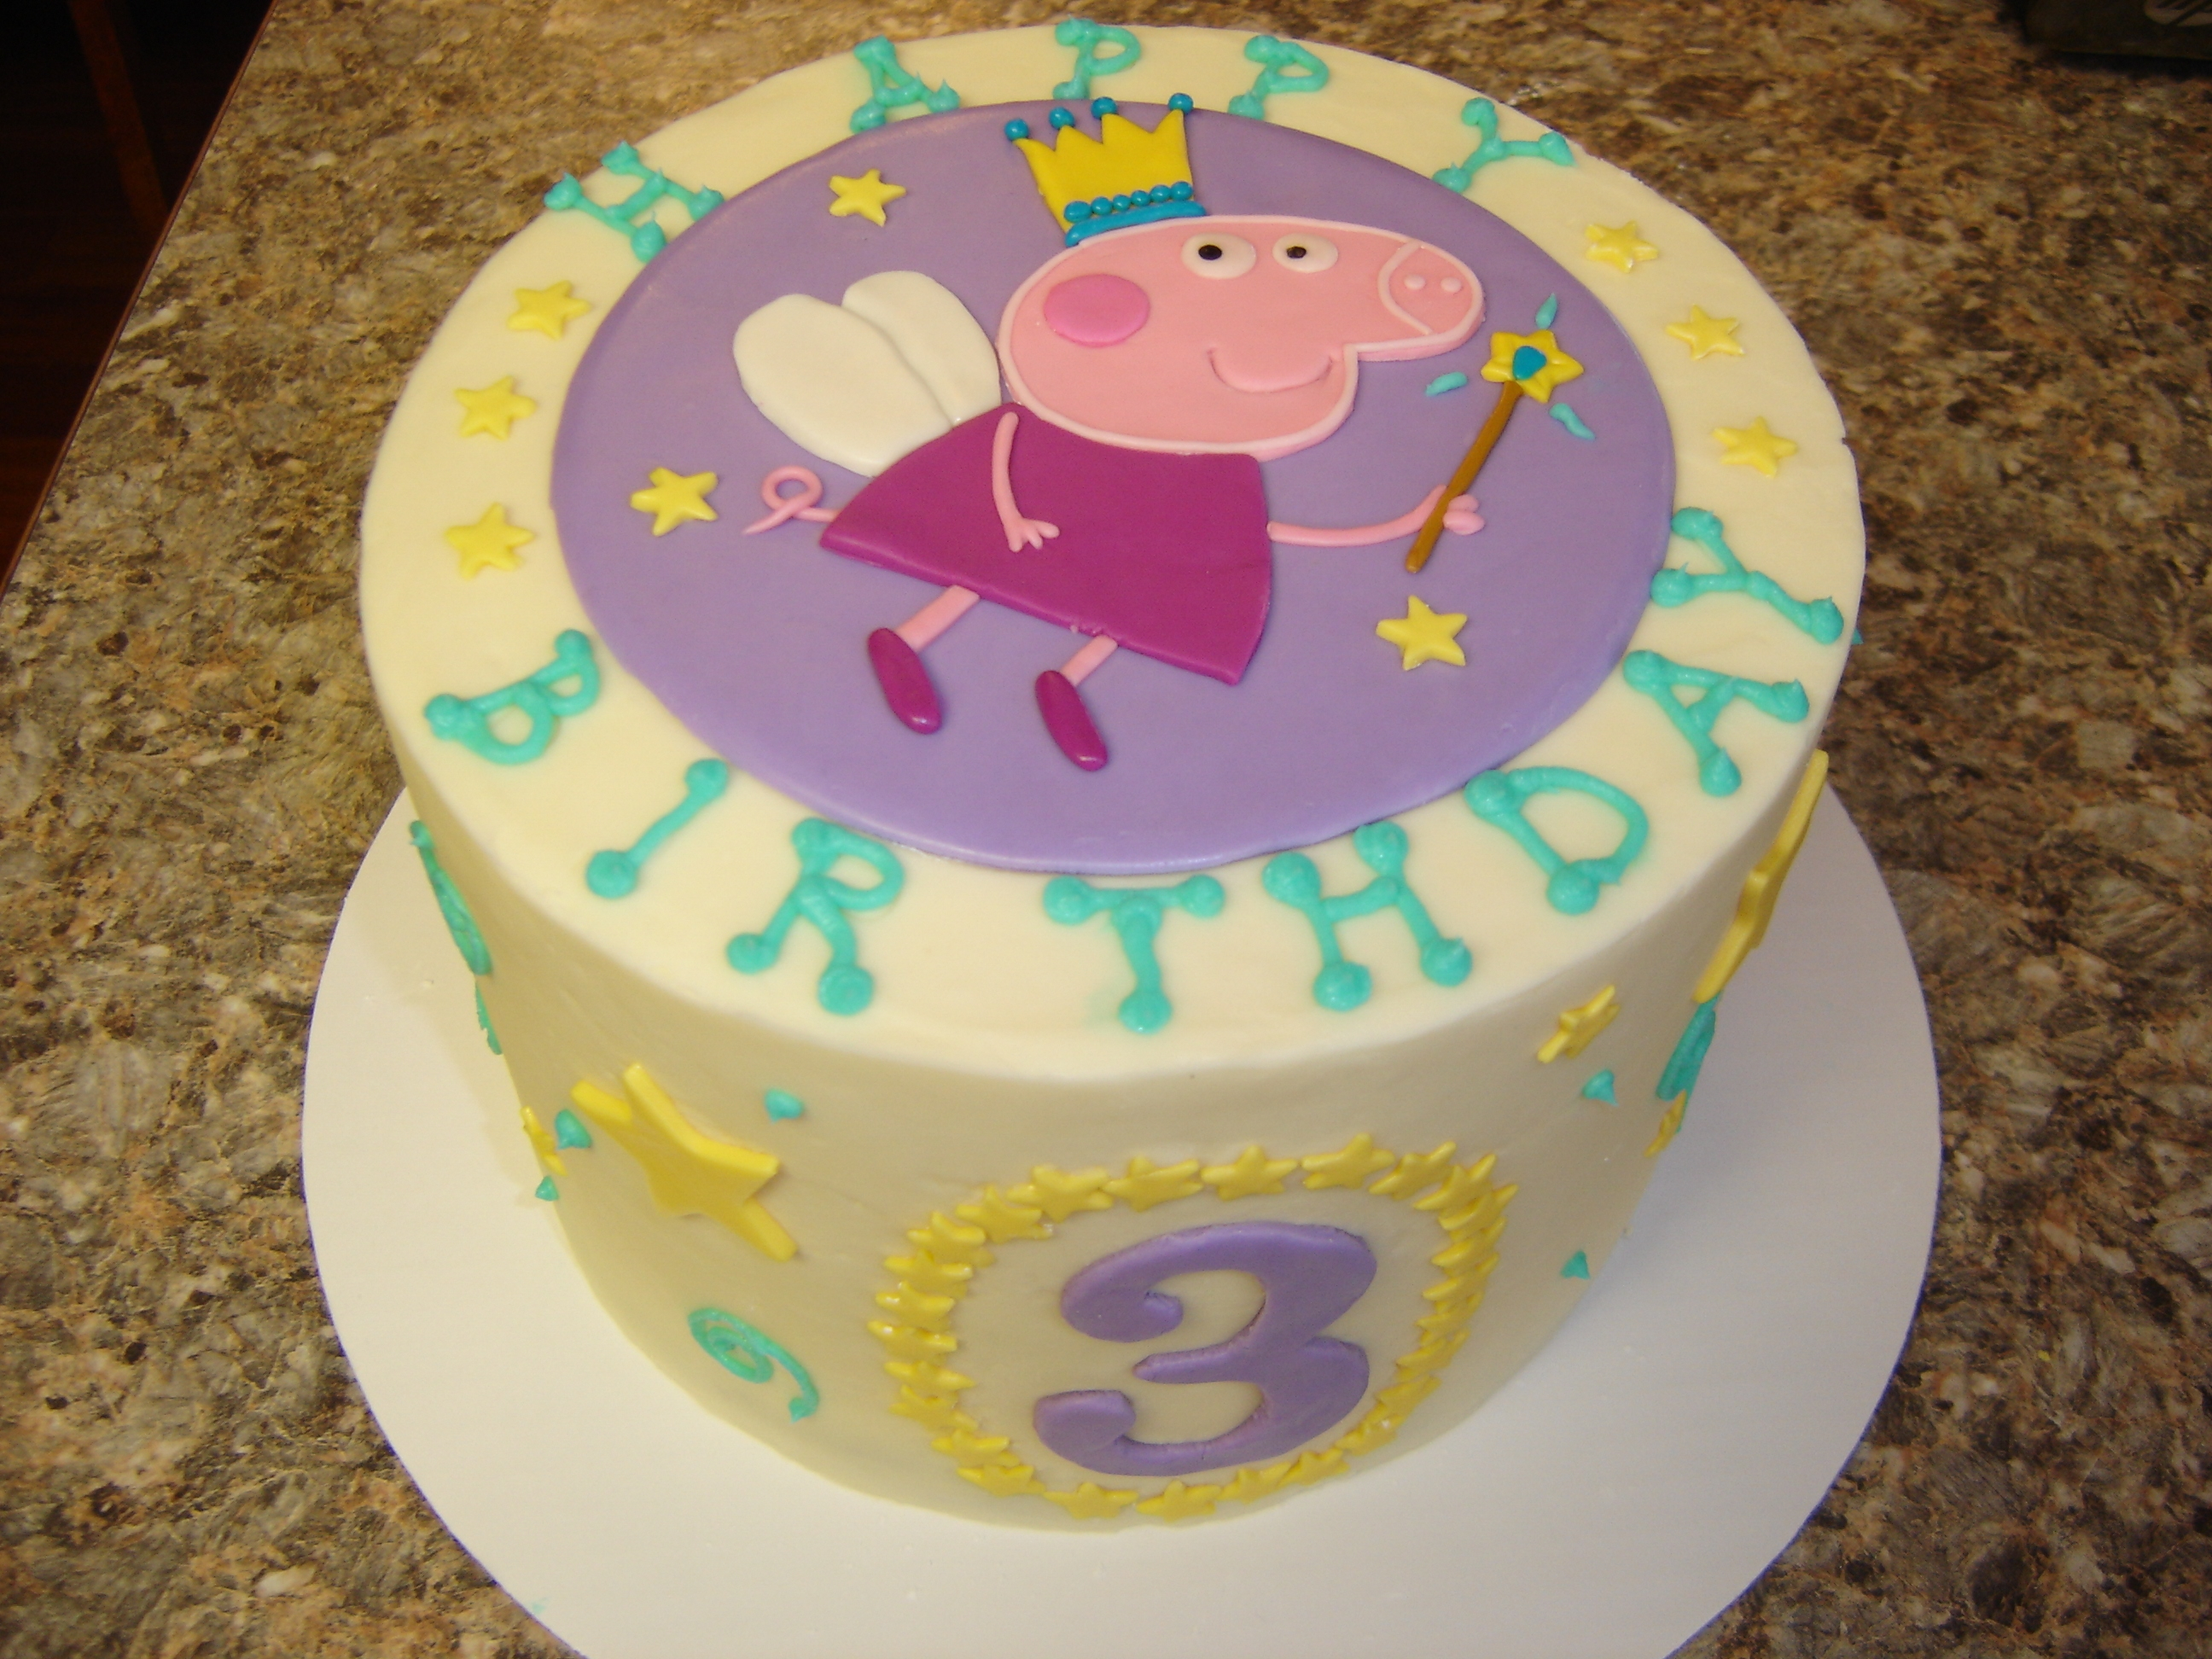 Peppa Pig Birthday buttercream cake with fondant accents